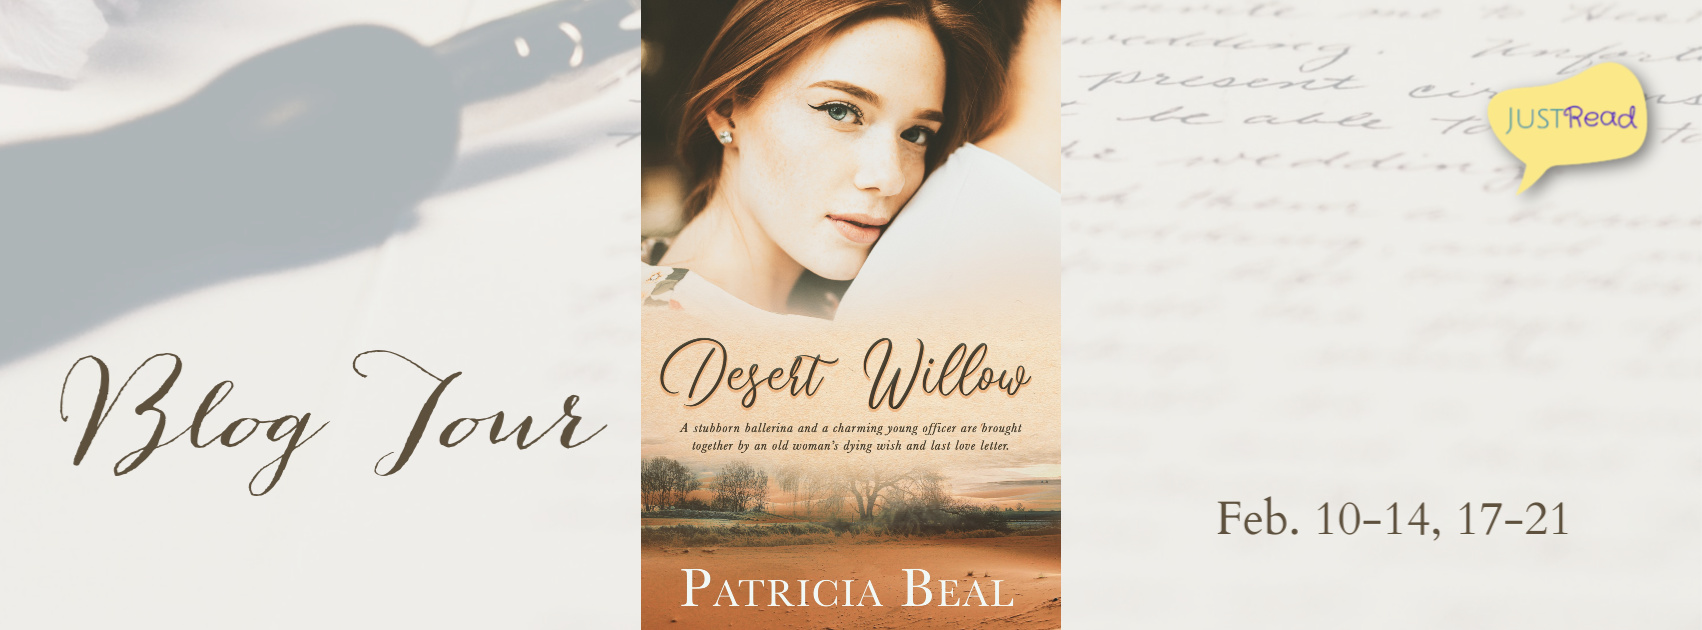 Desert Willow by Patricia Beal - Author Interview